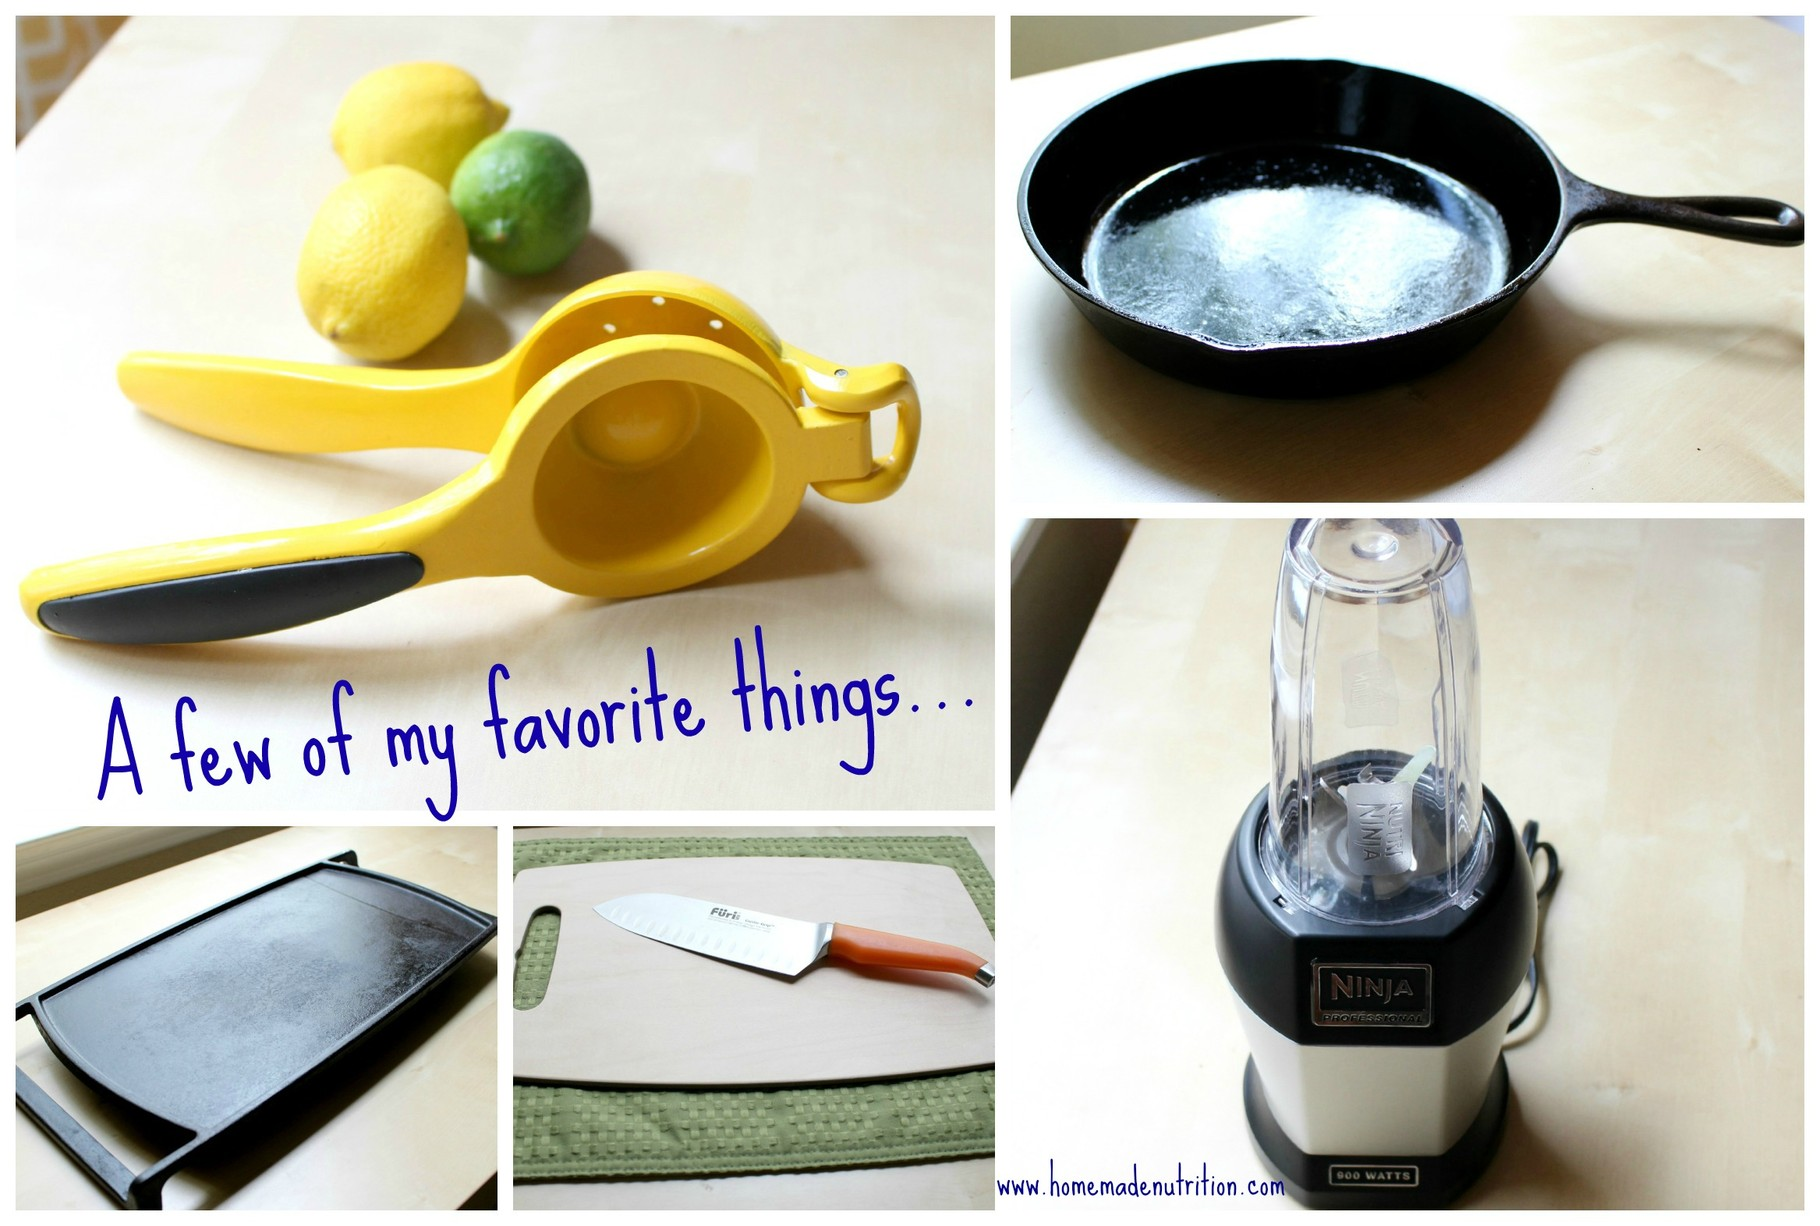 Top 5 Everyday Kitchen Gadgets and Tools - Homemade Nutrition ...